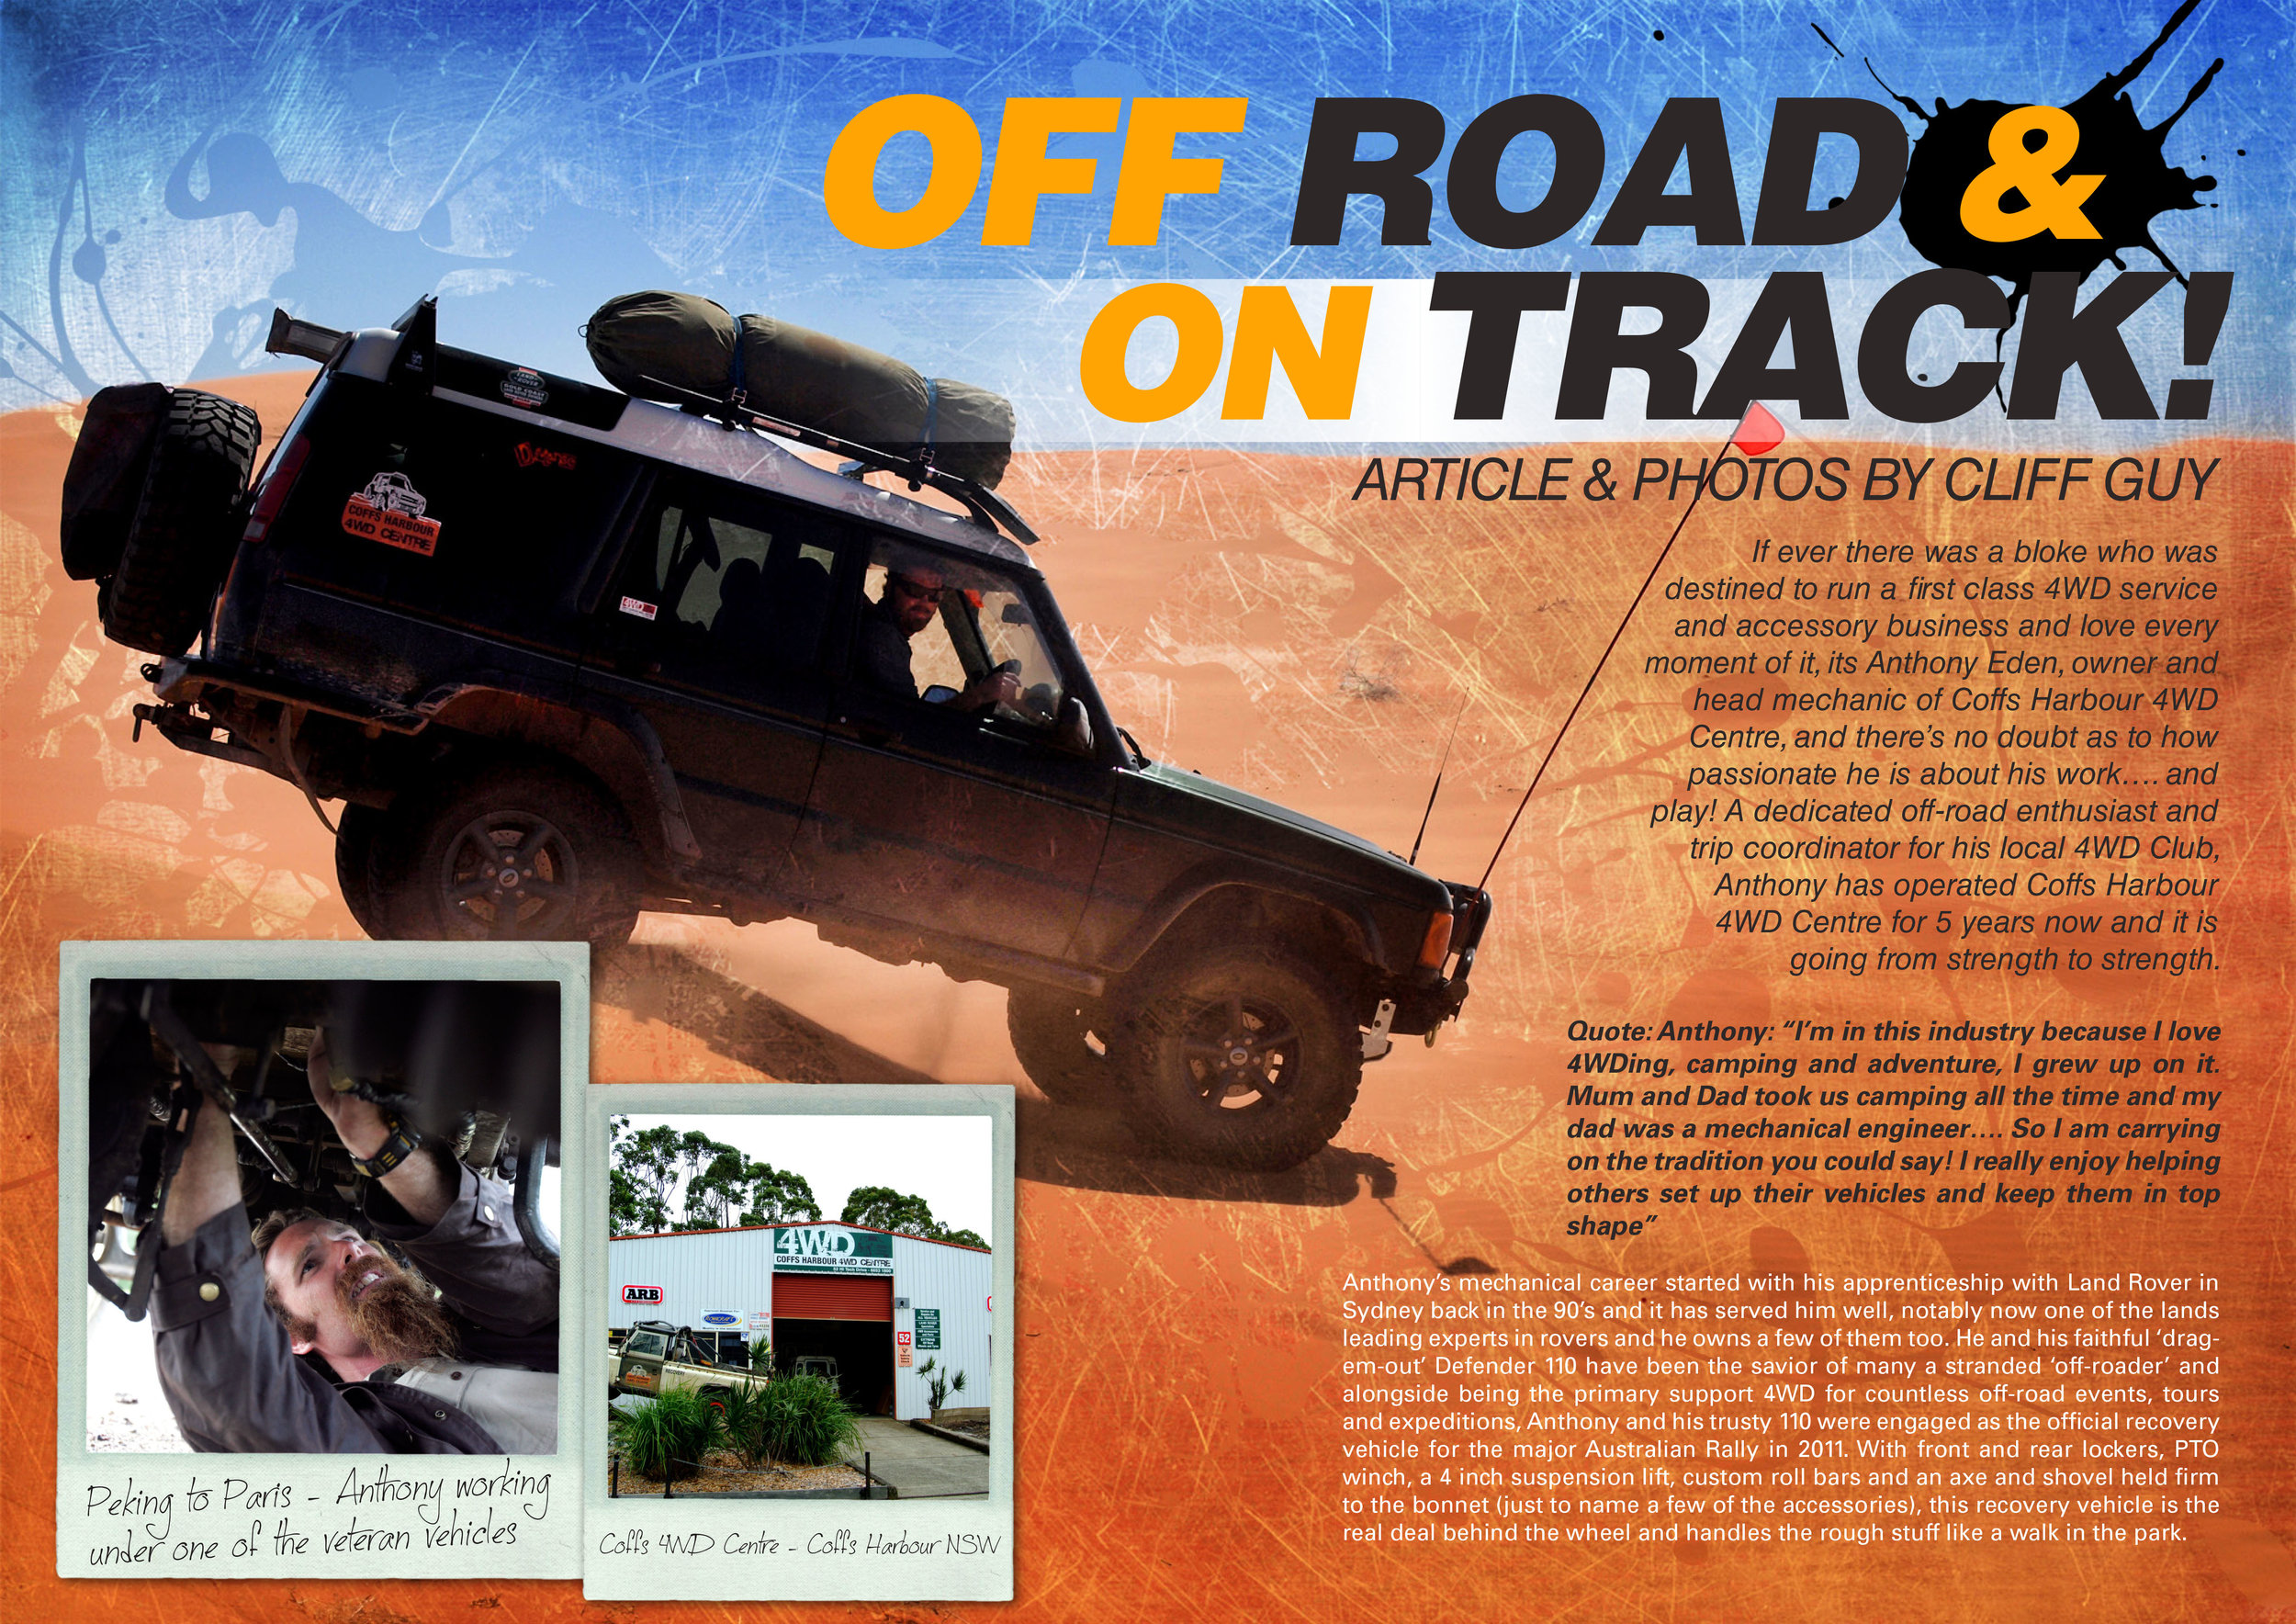 Off_Road_and_On_Track-1.jpg